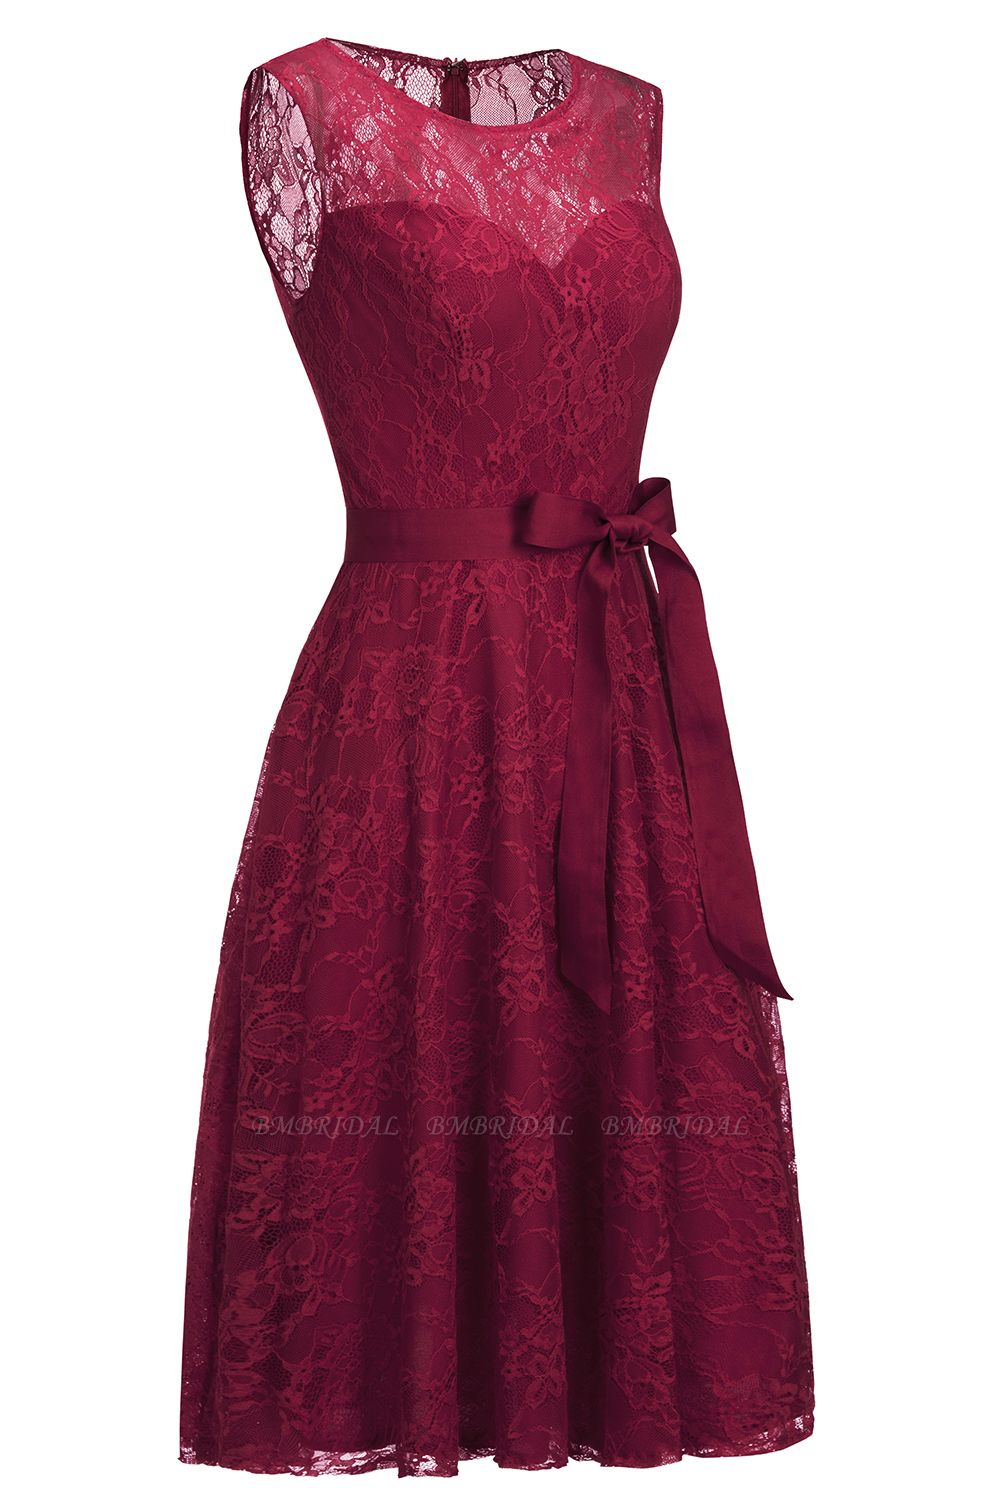 BMbridal A-line Sleeveless Burgundy Lace Dress with Bow